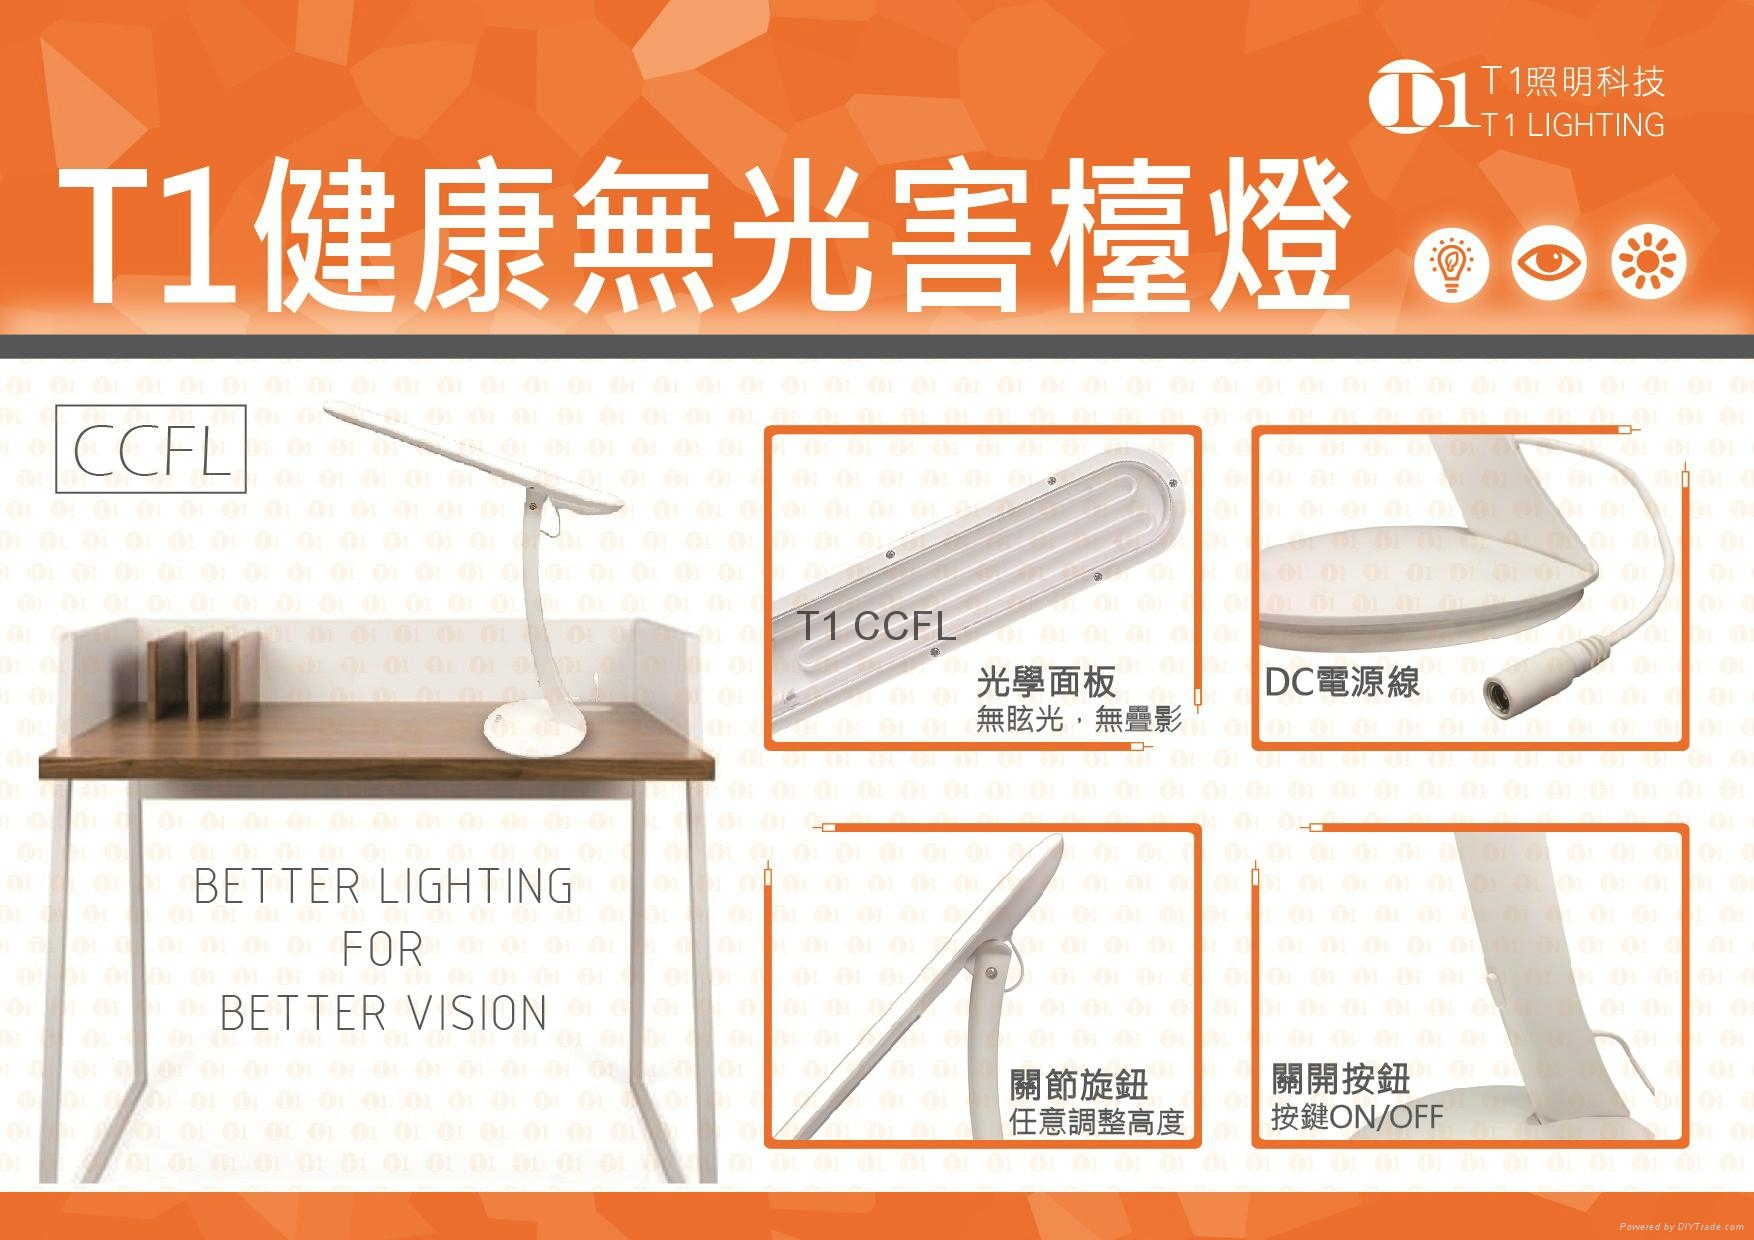 T1 COMFORTABLE DESK LAMP, NOT LED